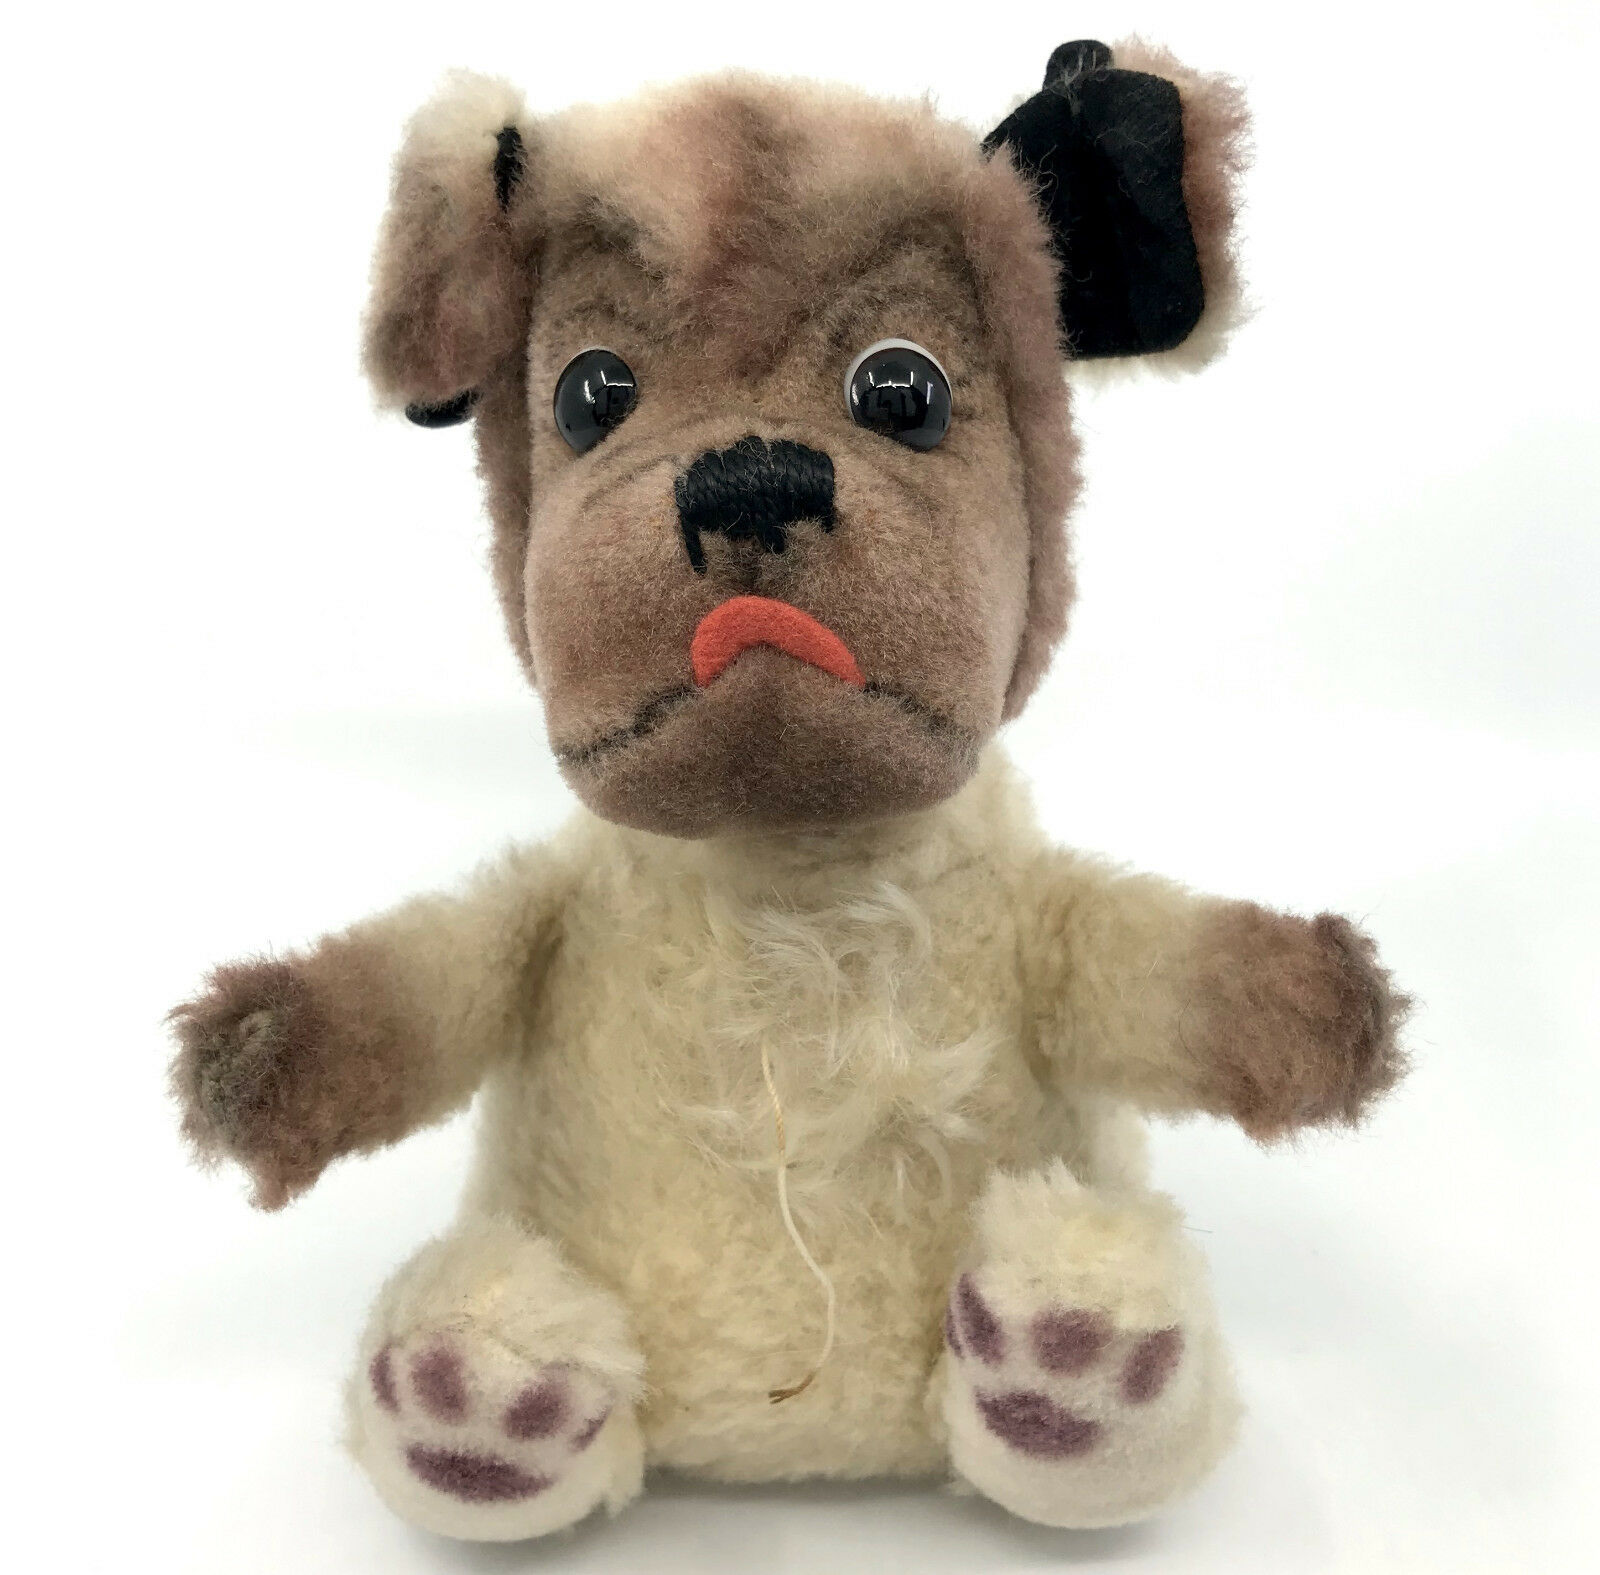 Steiff Mopsy Ball Dog Dralon Mohair Plush 16cm 6.5in 1960 -61 Rare Vintage no ID